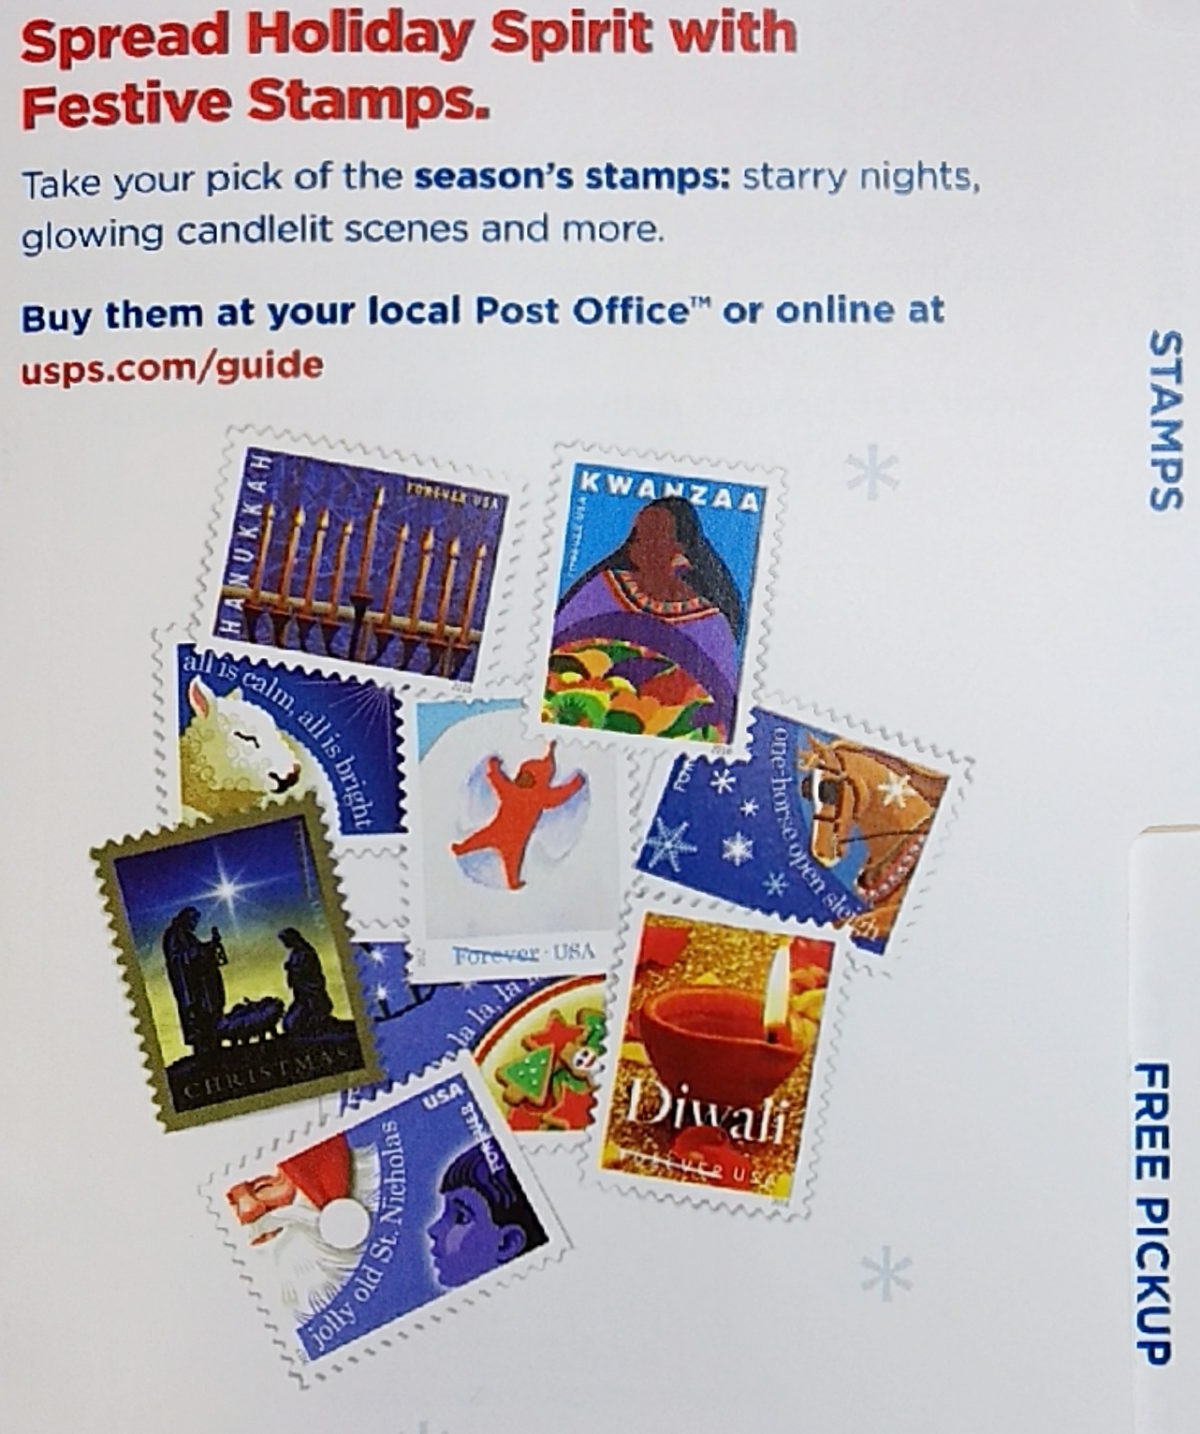 What about solstice stamps?